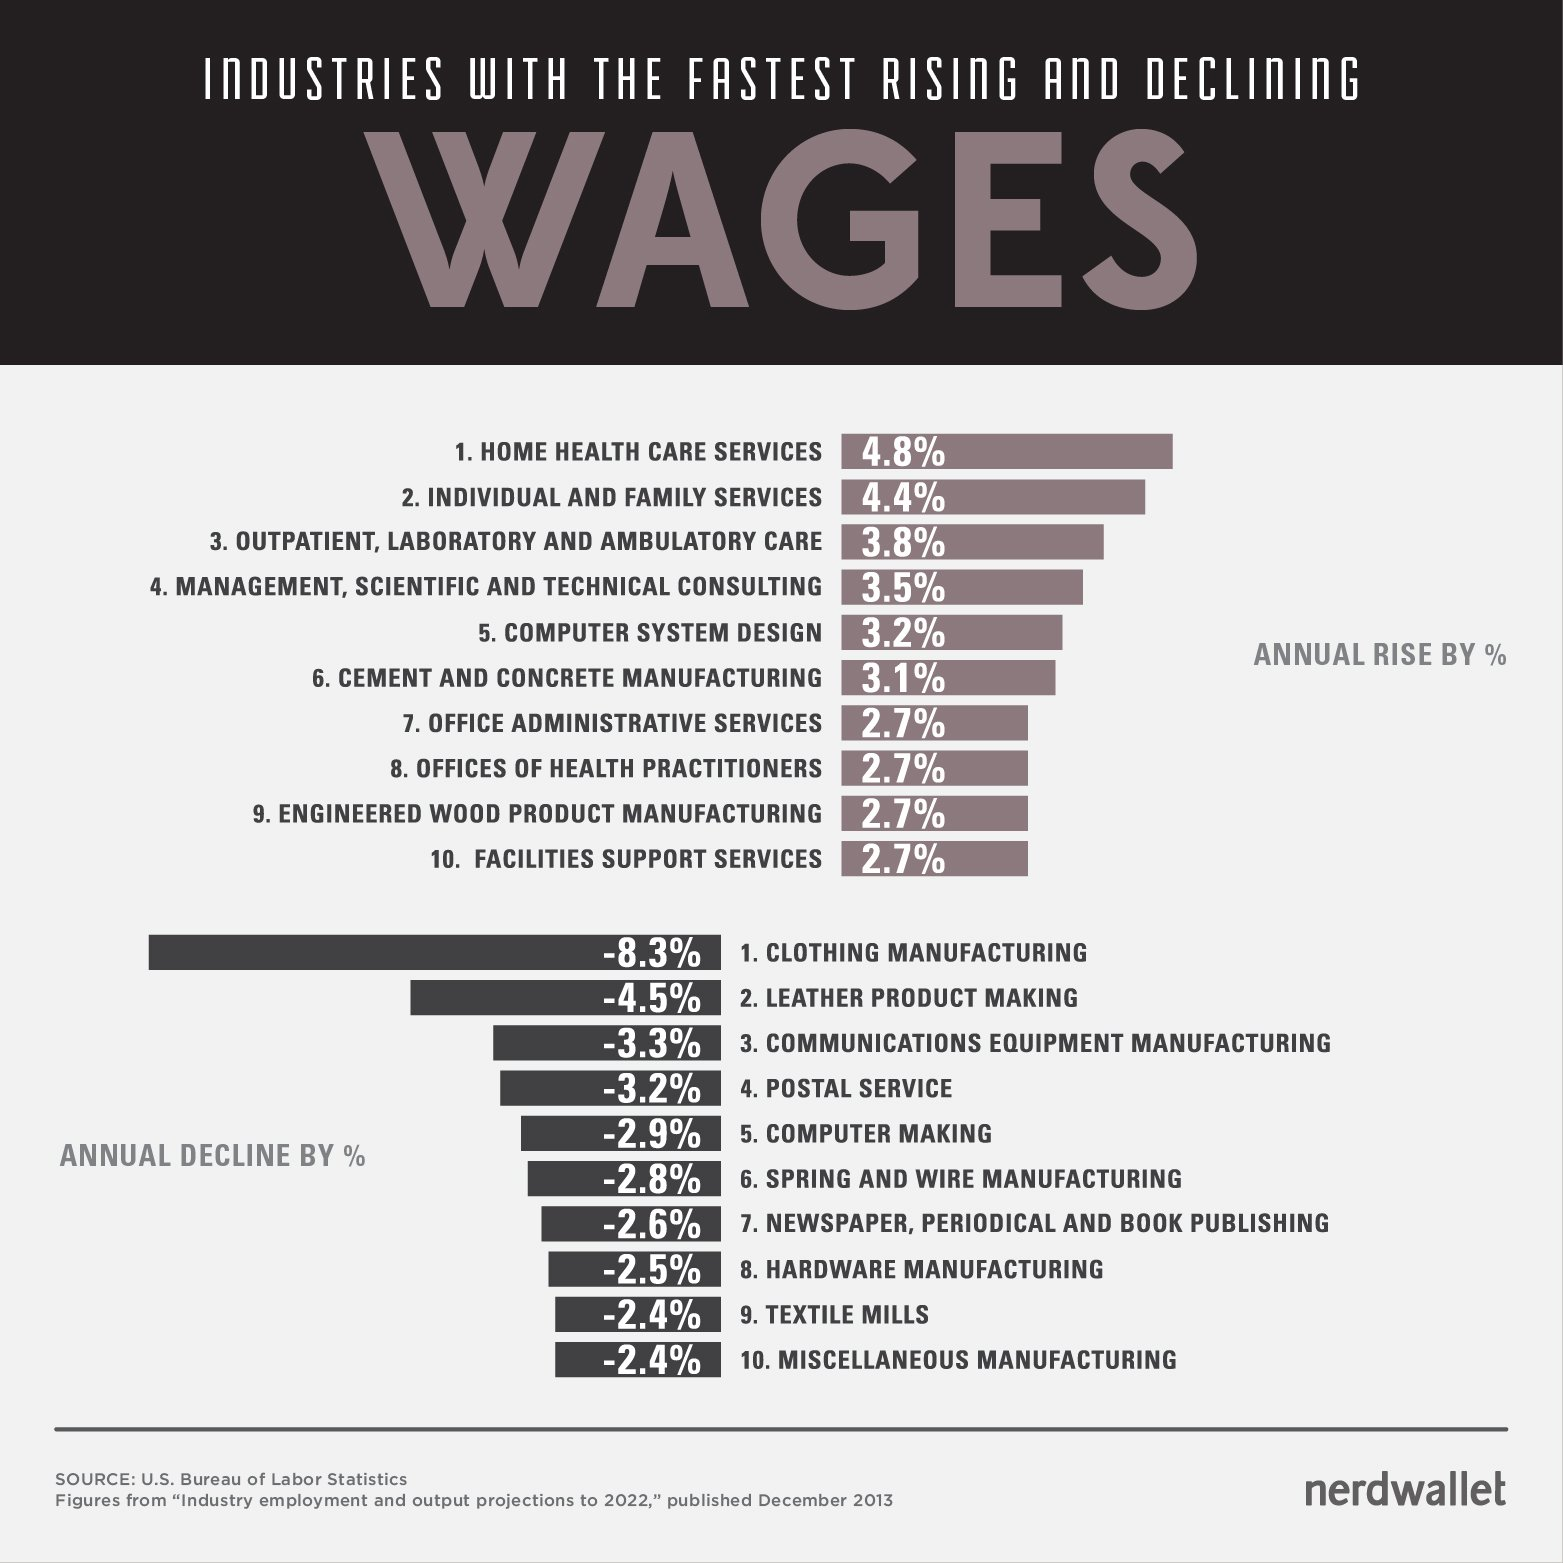 rising_declining_wages_WORDPRESS_750px-150ppi-01